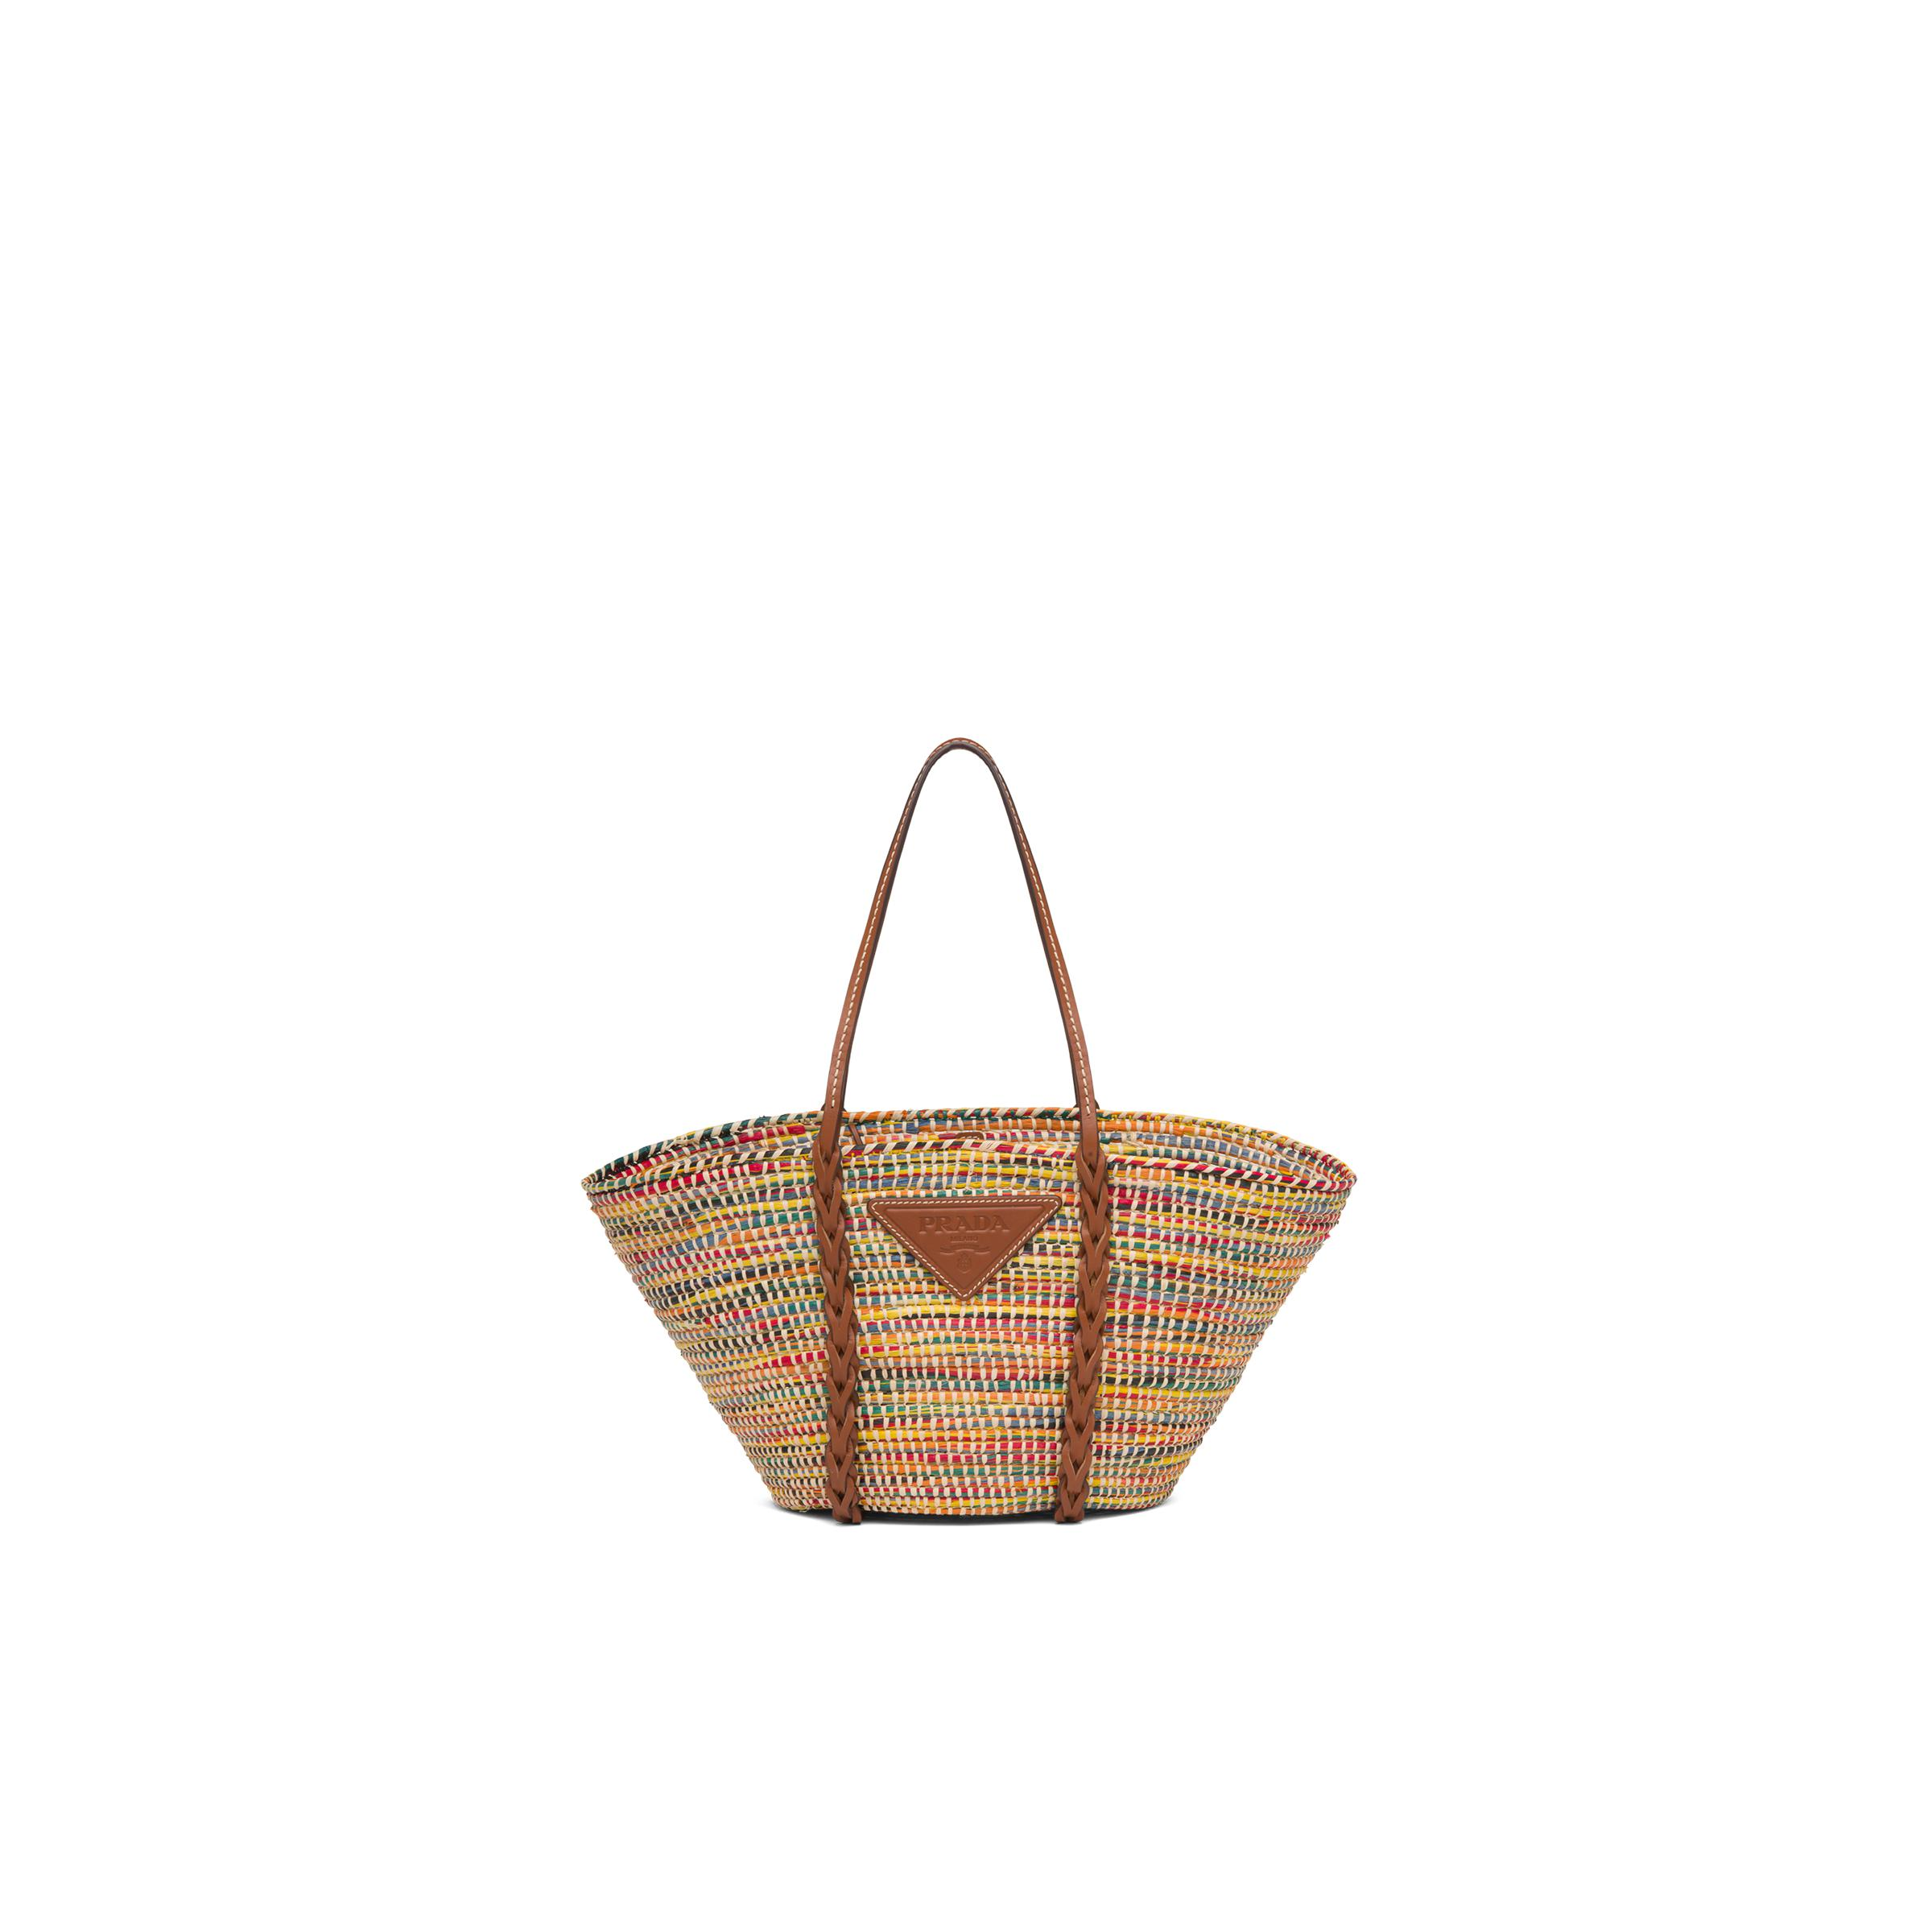 Straw And Leather Tote Bag Women Multicolored/cognac